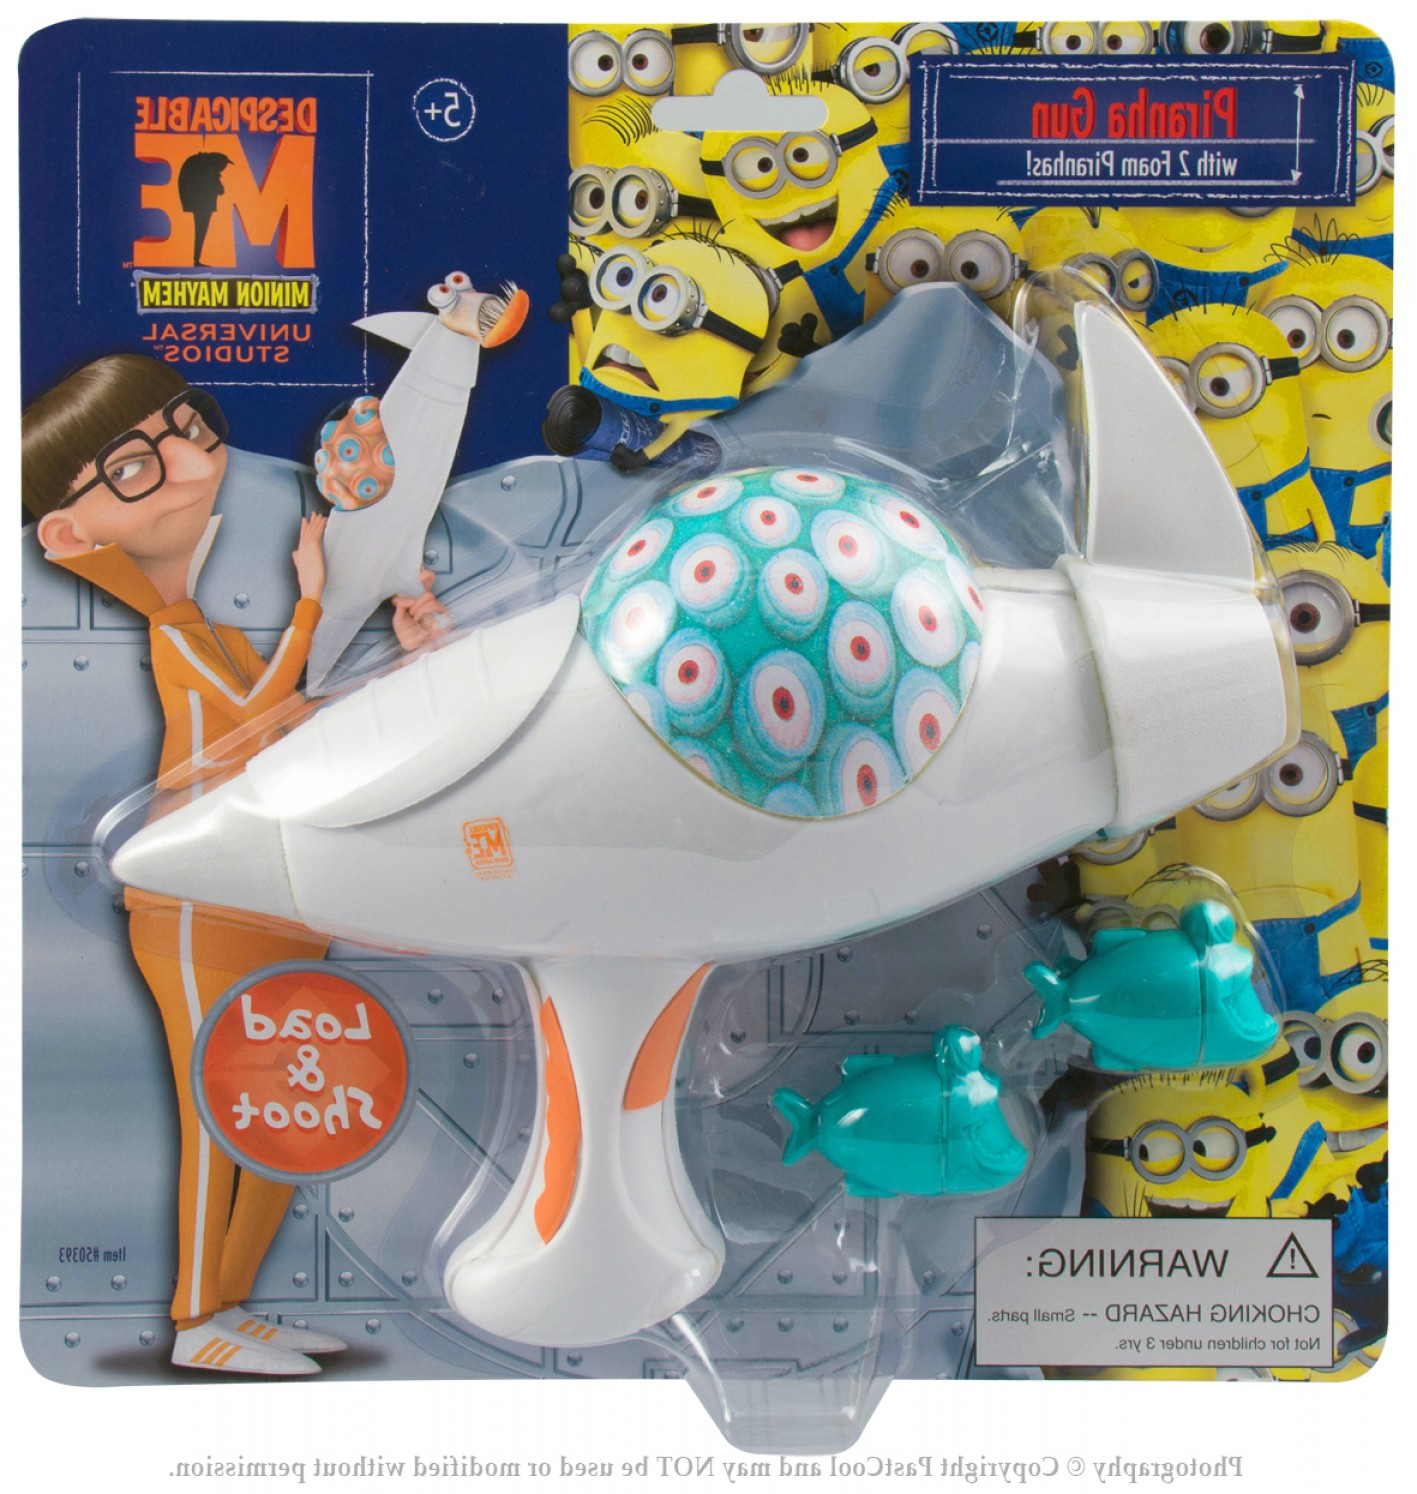 Despicable Me Vector Piranha: Despicable Me Vector Battle Piranha Gun Foam Toy Universal New